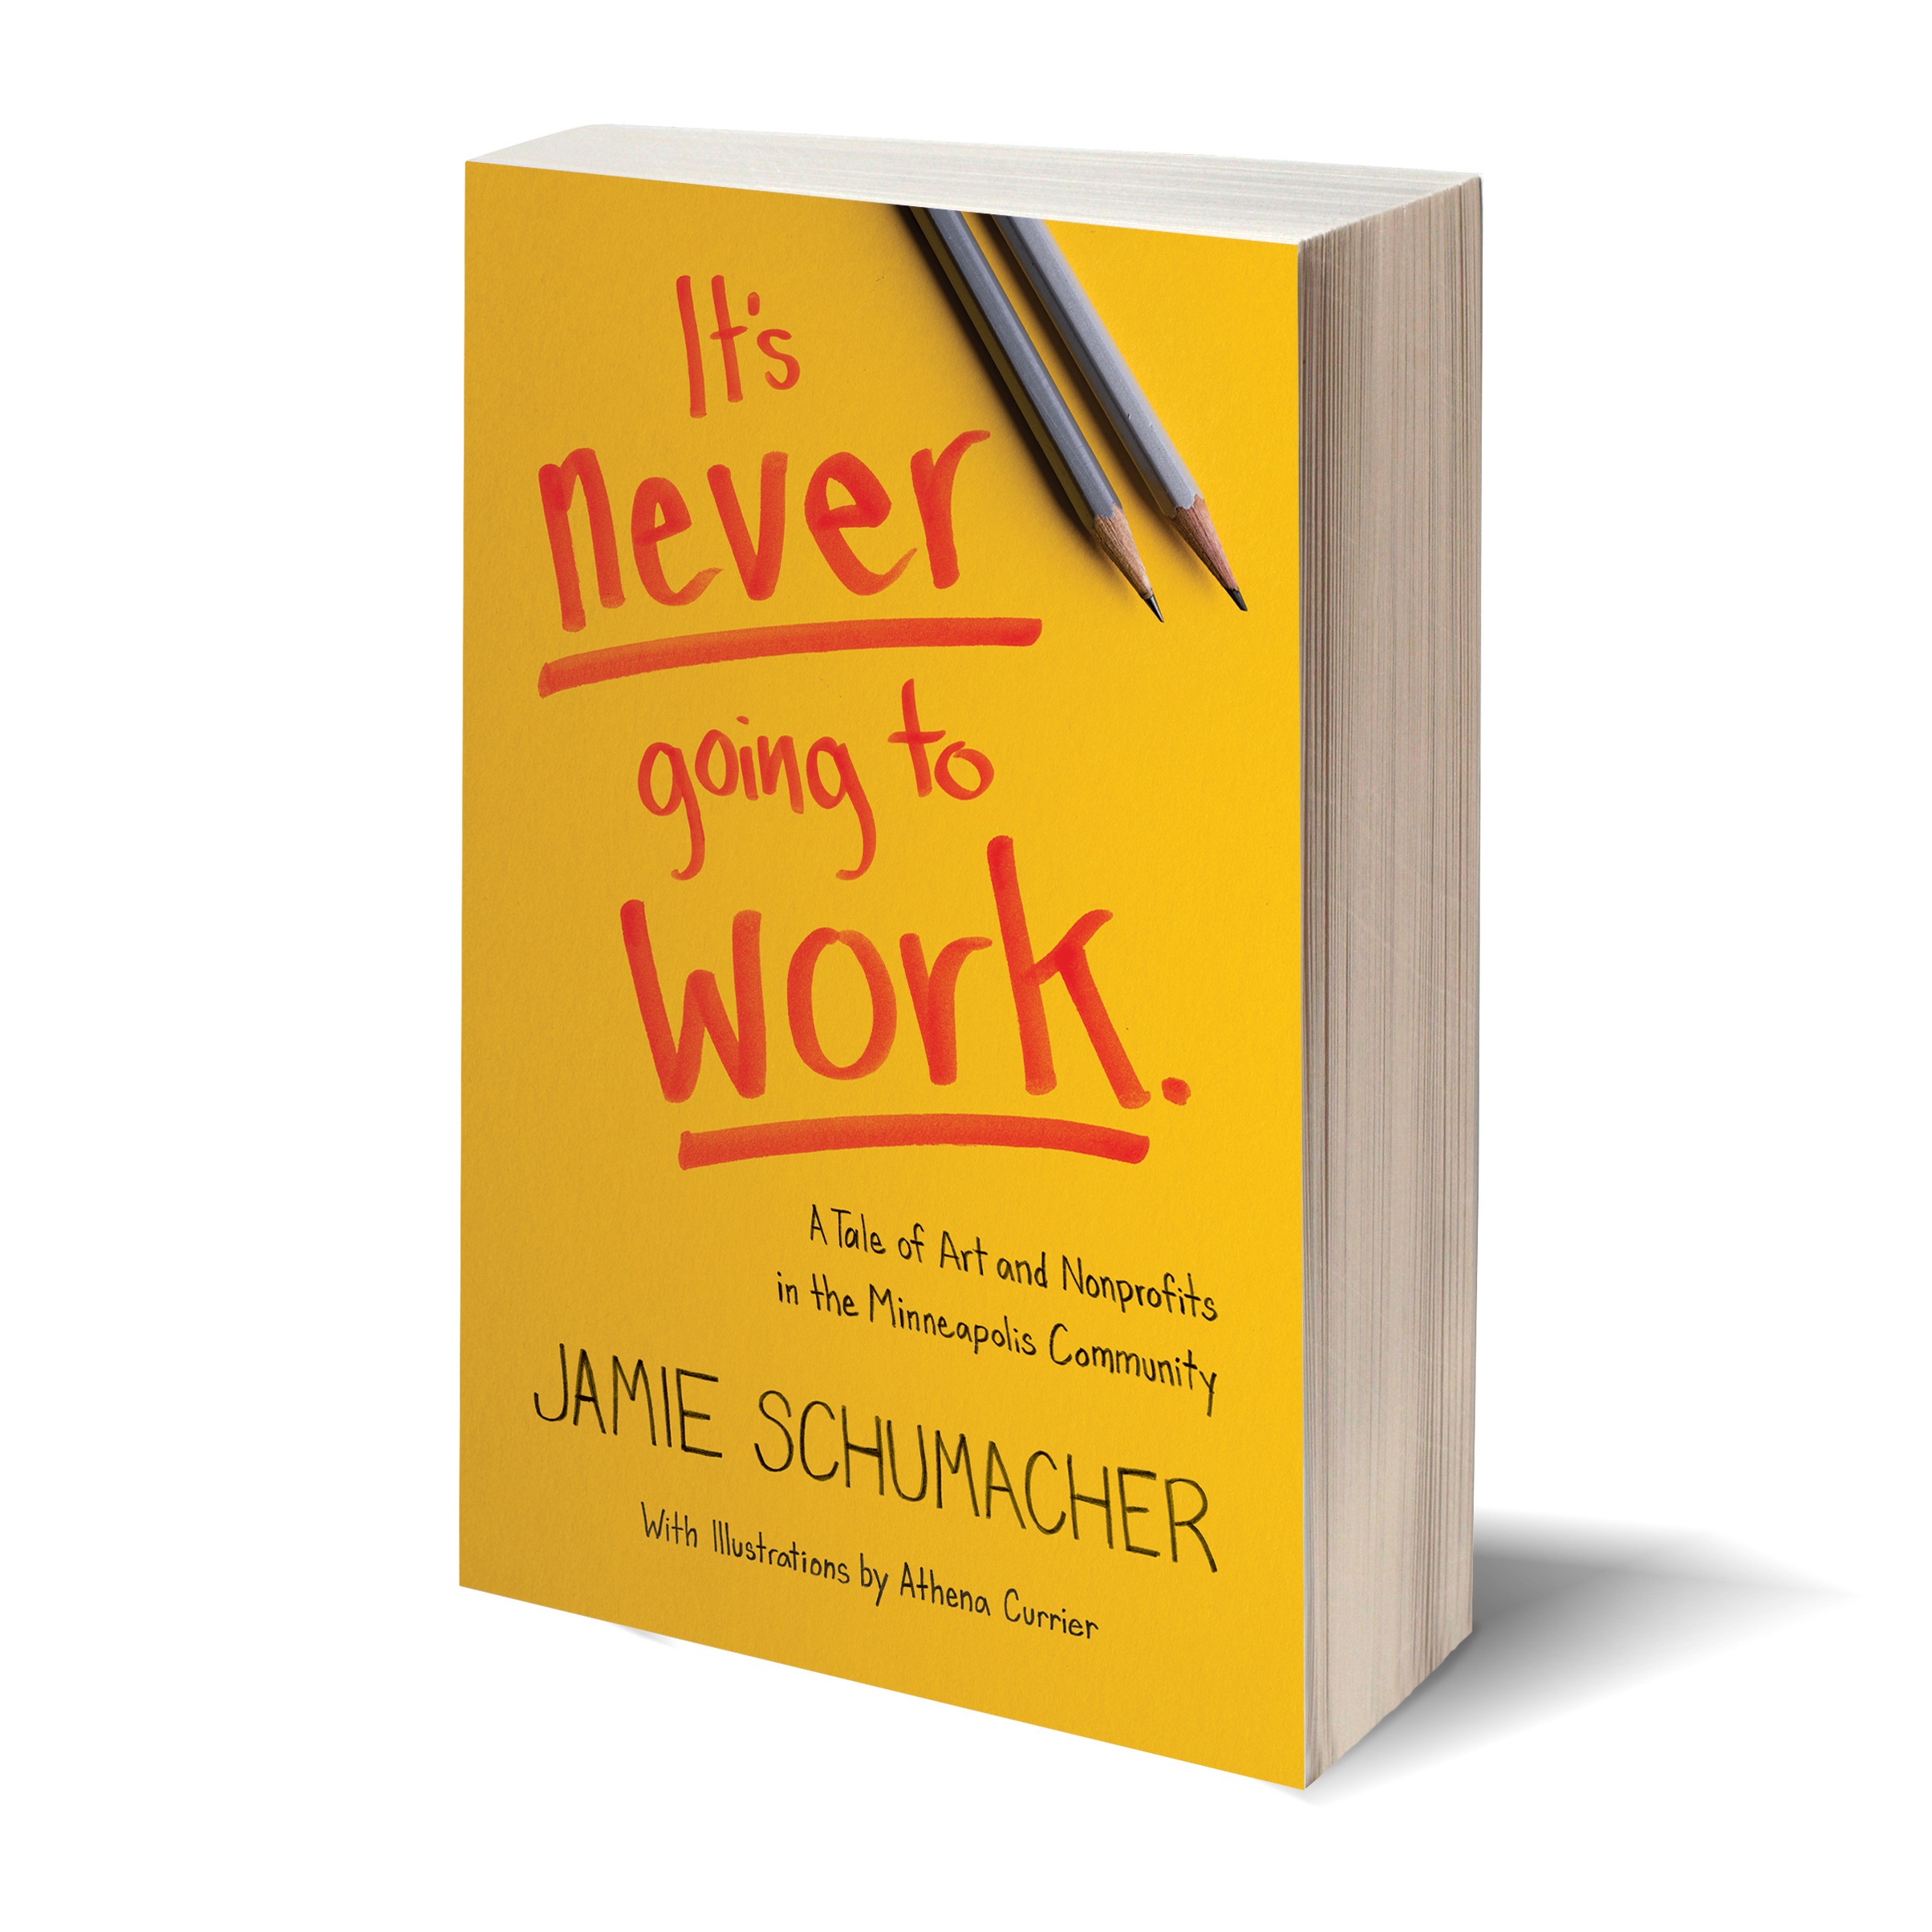 - This post is adapted from It's Never Going To Work: A Tale of Art and Nonprofits in the Minneapolis Community with illustrations by Athena Currier. Post graphics by Jamie Schumacher. ©2018 Jamie Schumacher.It's Never Going To Work is a light-hearted, illustrated book that offers real-life insights on founding a community space and nonprofit. It provides tools, tips, resources, and camaraderie to community organizers and anybody attempting something new.